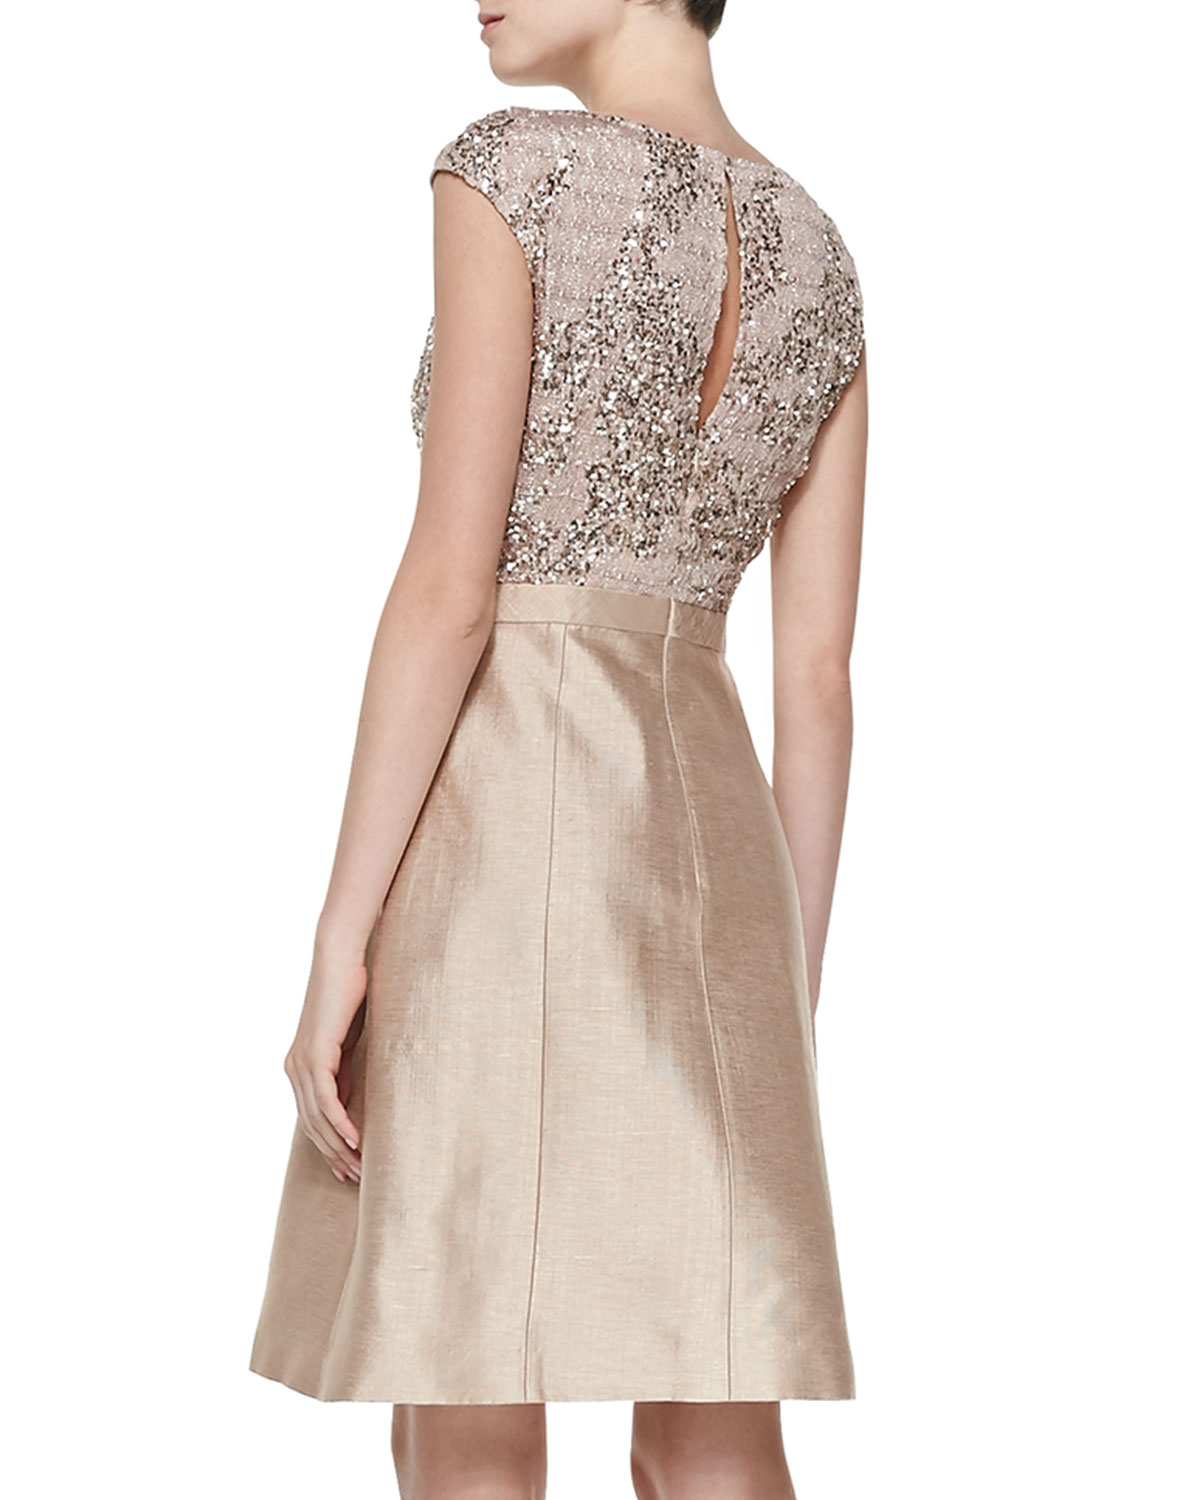 Lyst - Kay Unger Cap-sleeve Beaded-bodice Cocktail Dress in Metallic